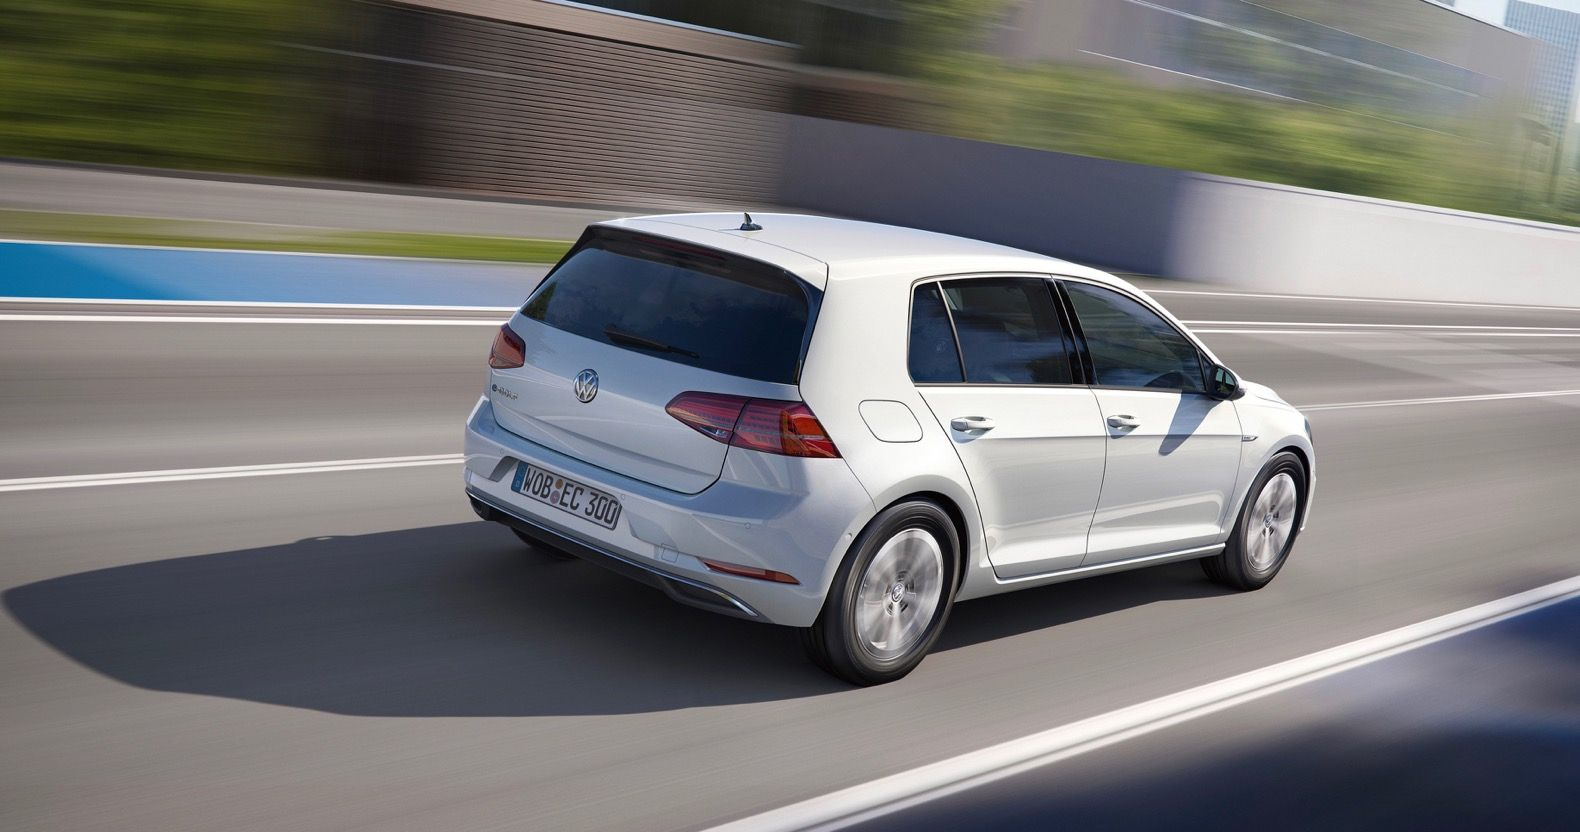 New Vw E Golf Beats Nissan Leaf Driving Range With 124 Miles Per Charge